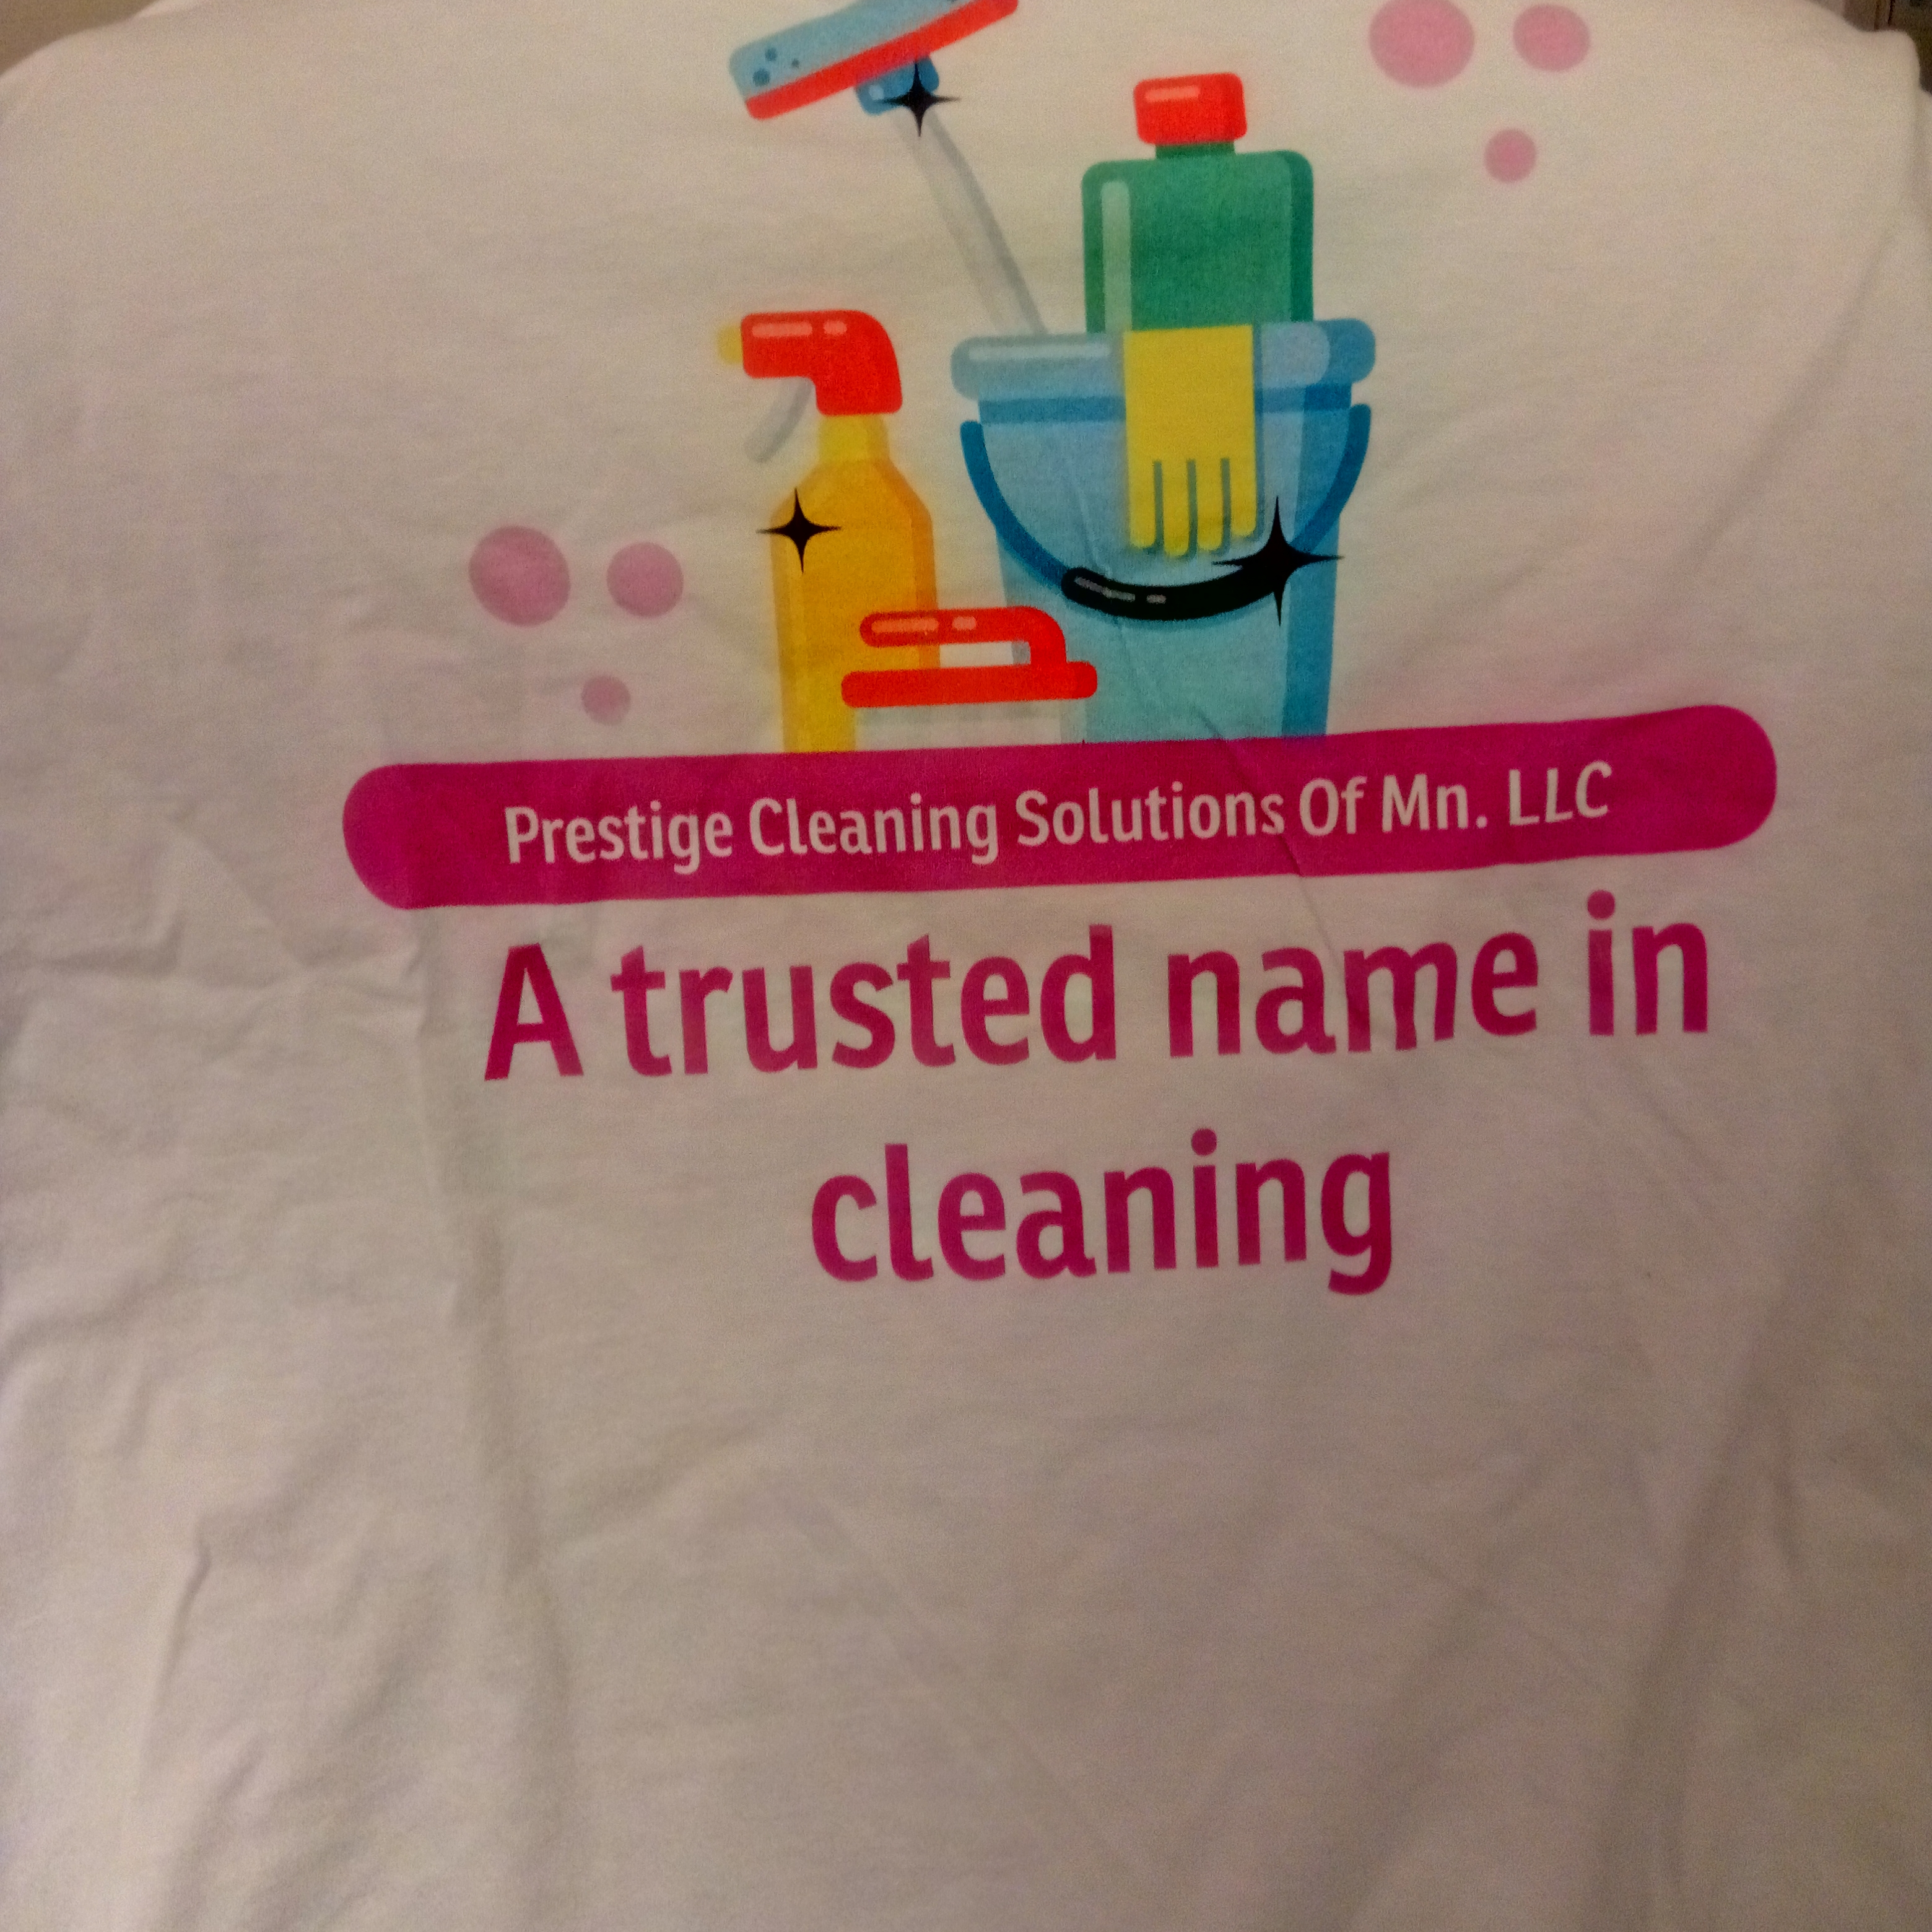 Prestige Cleaning Solutions of MN, LLC